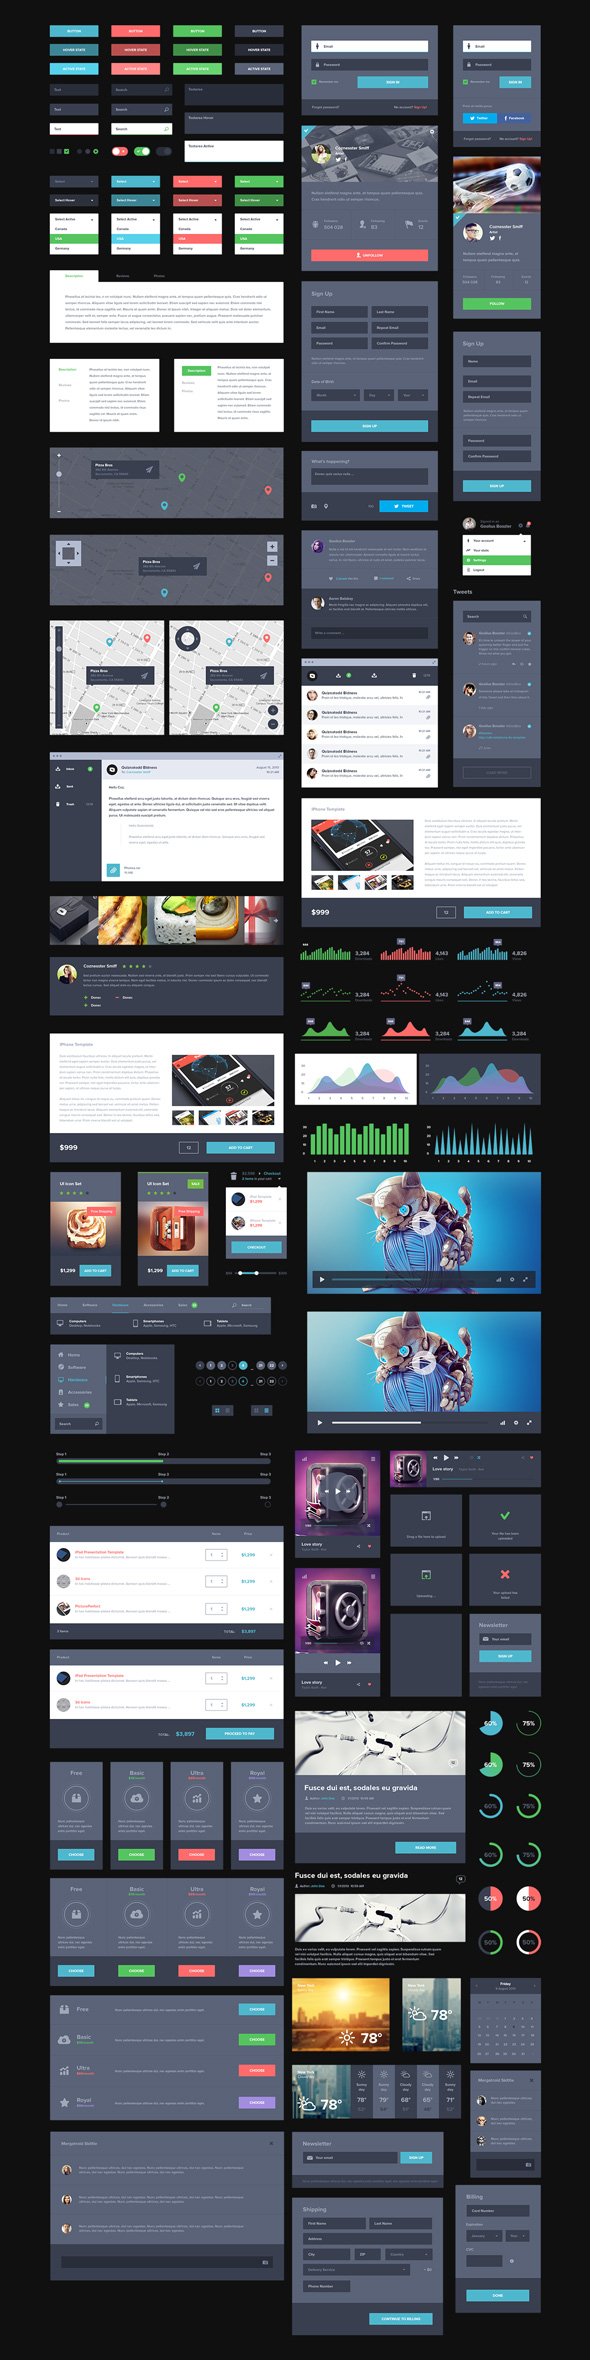 free dark ui kit